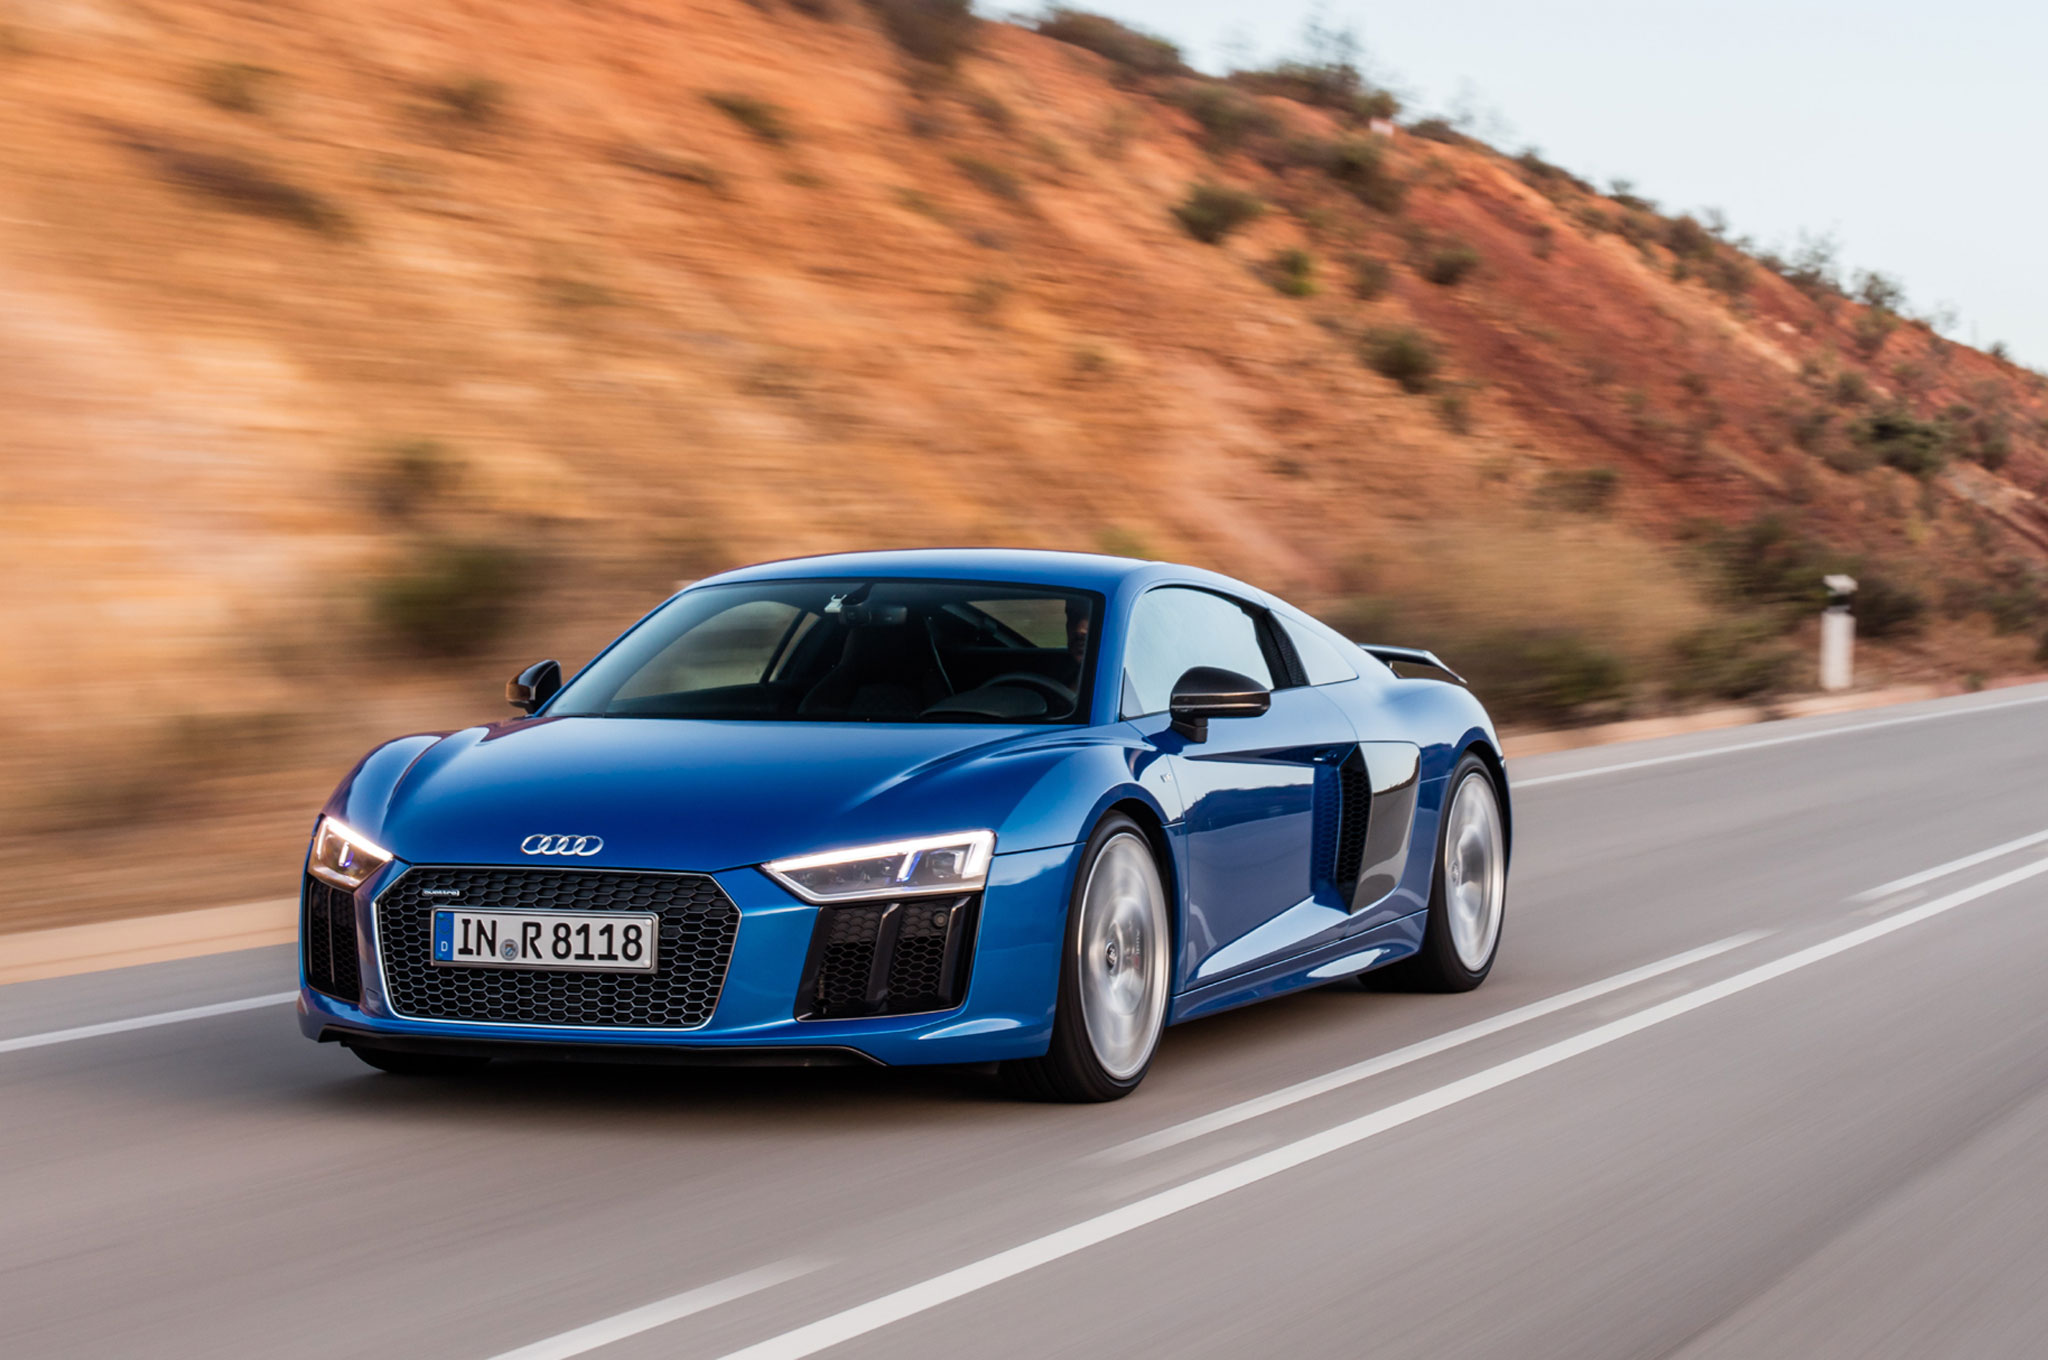 Audi R8 Spyder Goes Topless in New Spy Photos | Automobile Magazine